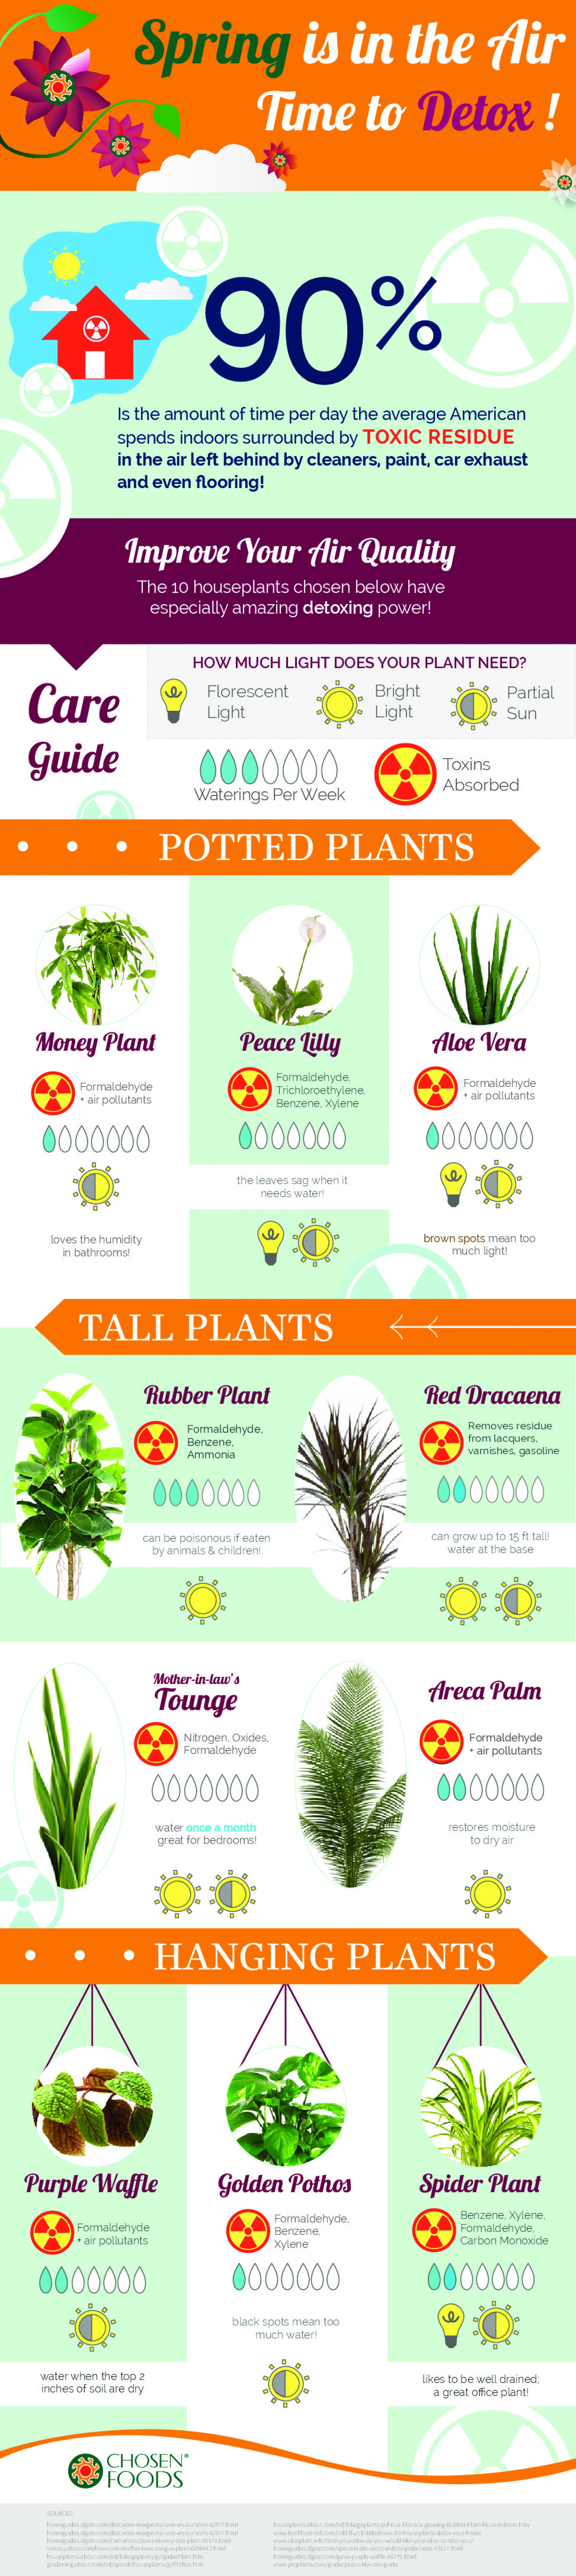 Spring is In The Air, Time To Detox! Infographic